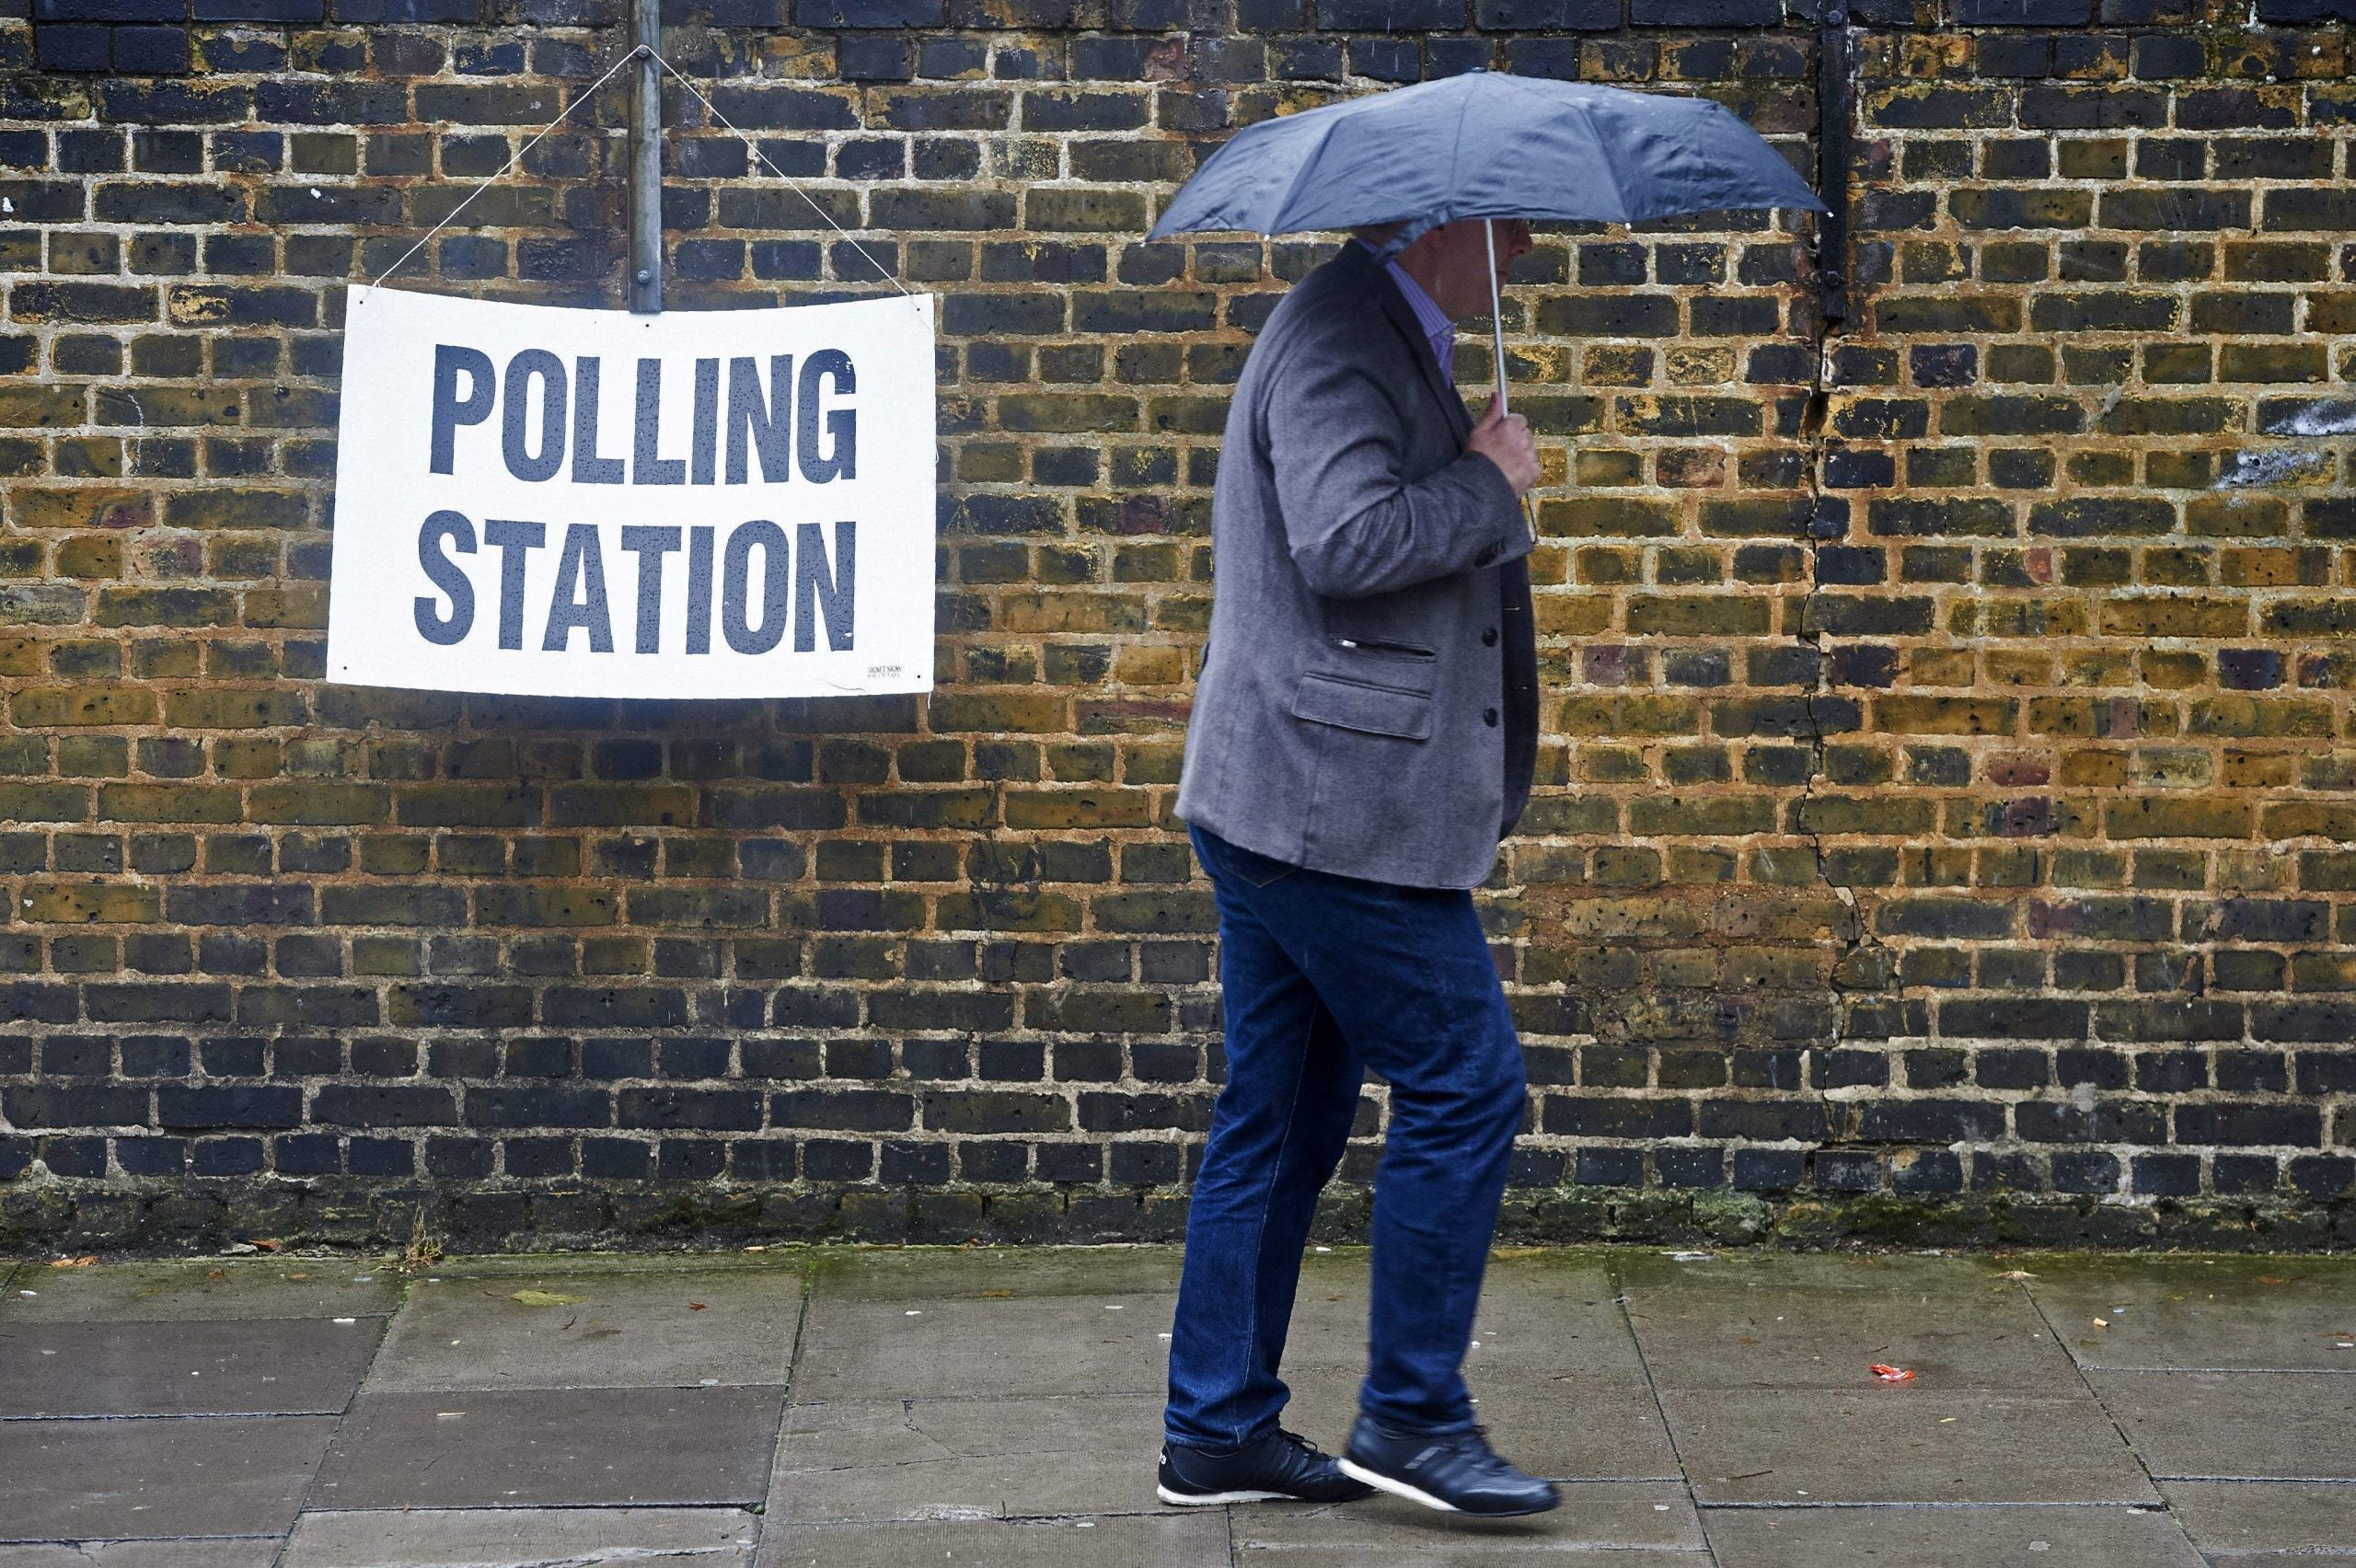 A political storm: bad weather delays transport and closes polling stations